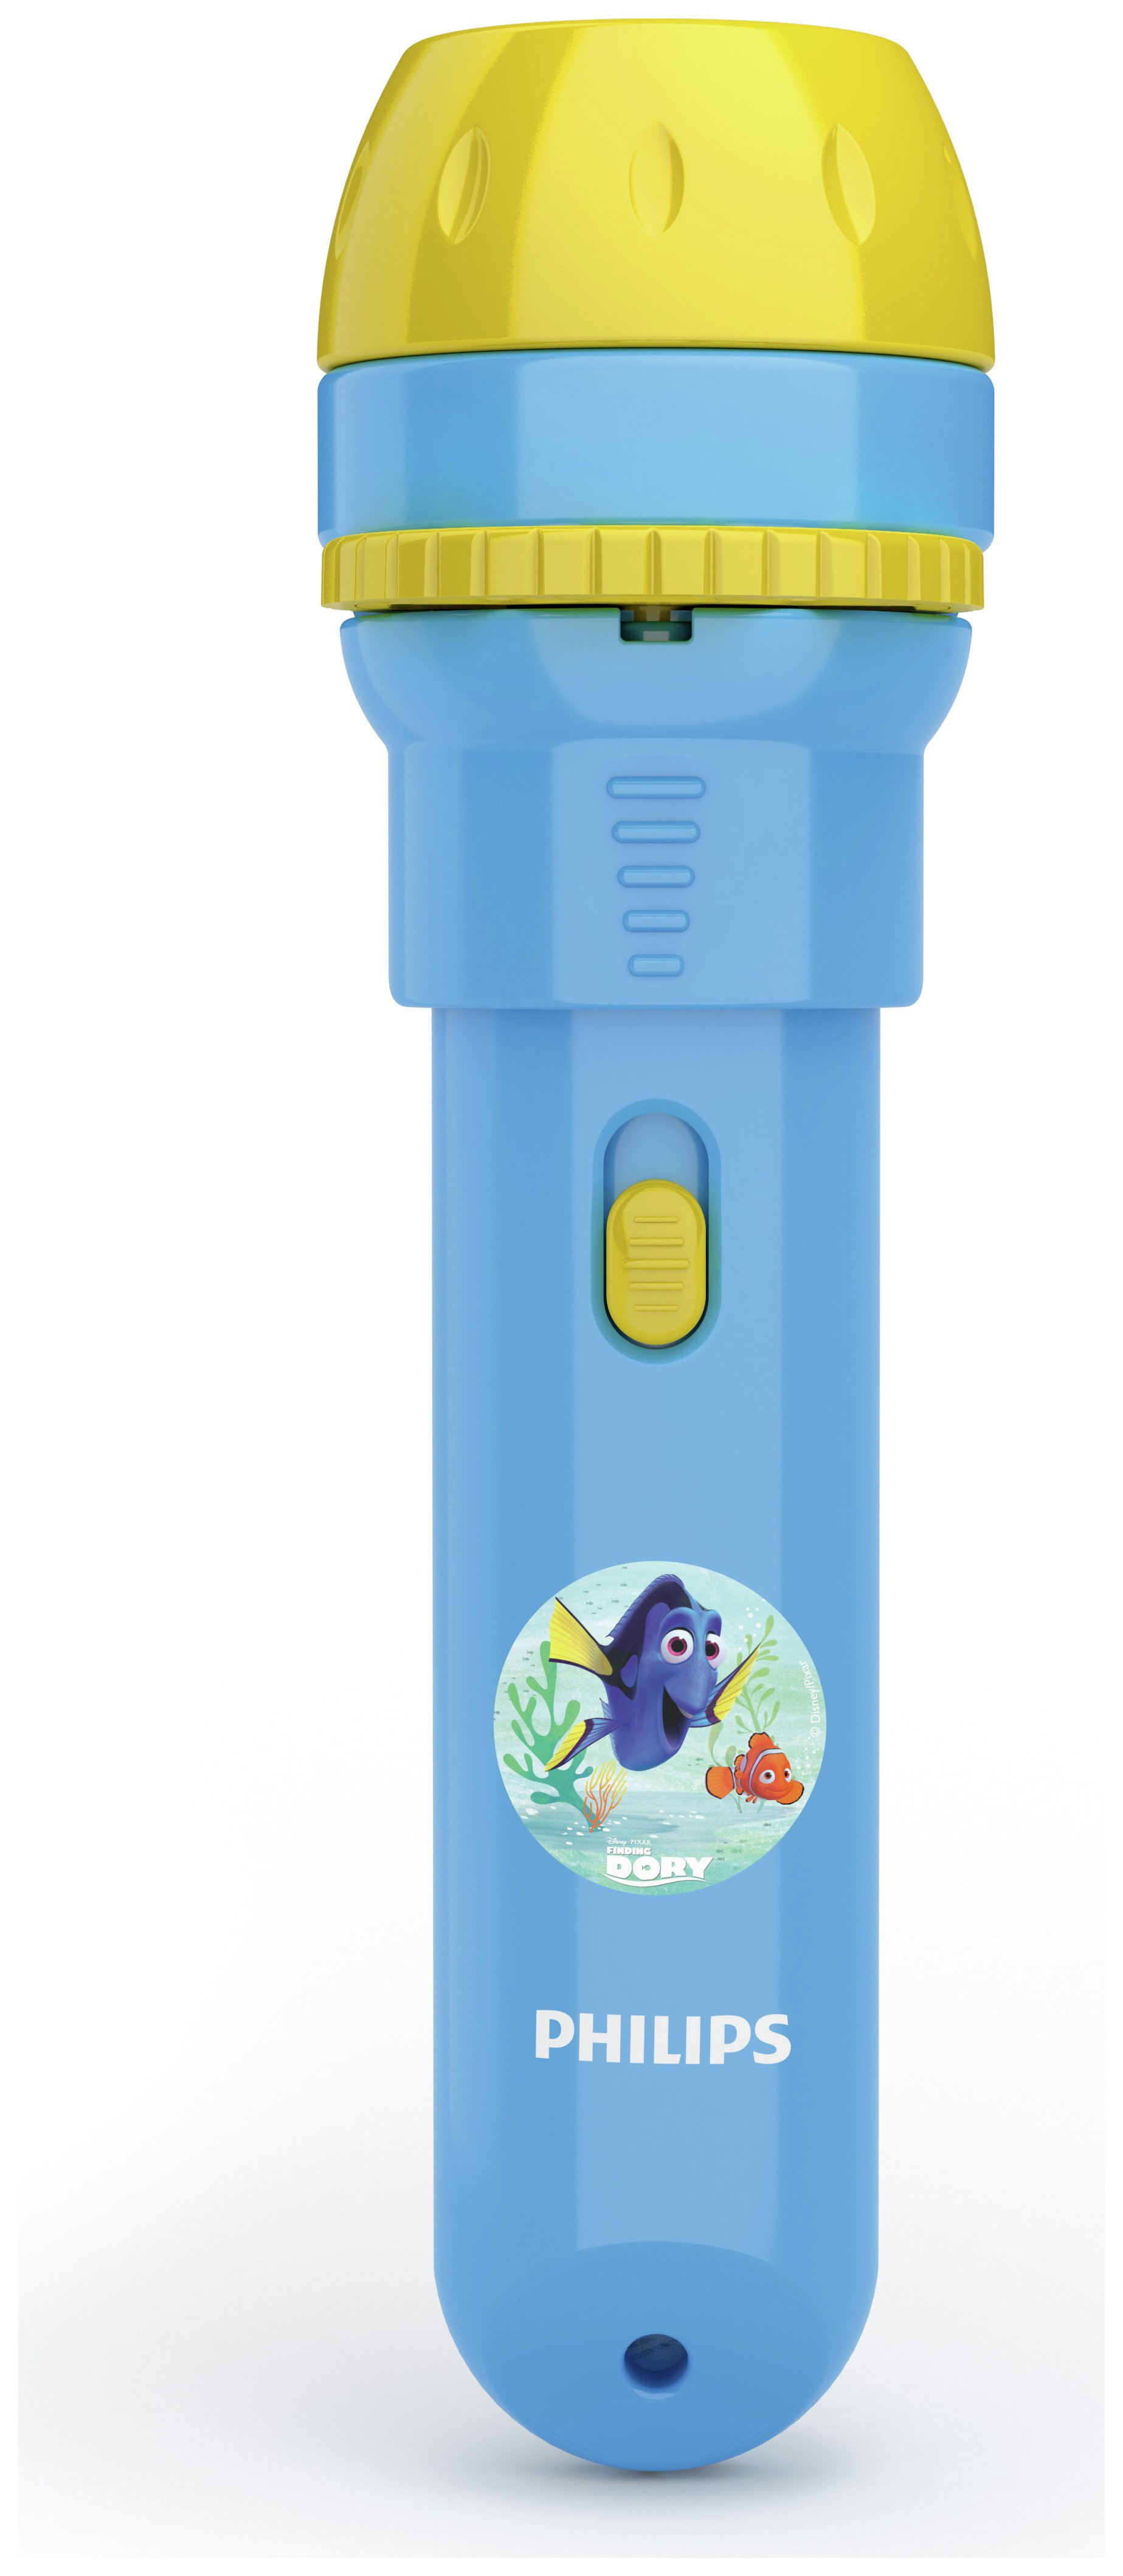 Image of Philips - Disney Finding Dory Torch Projector